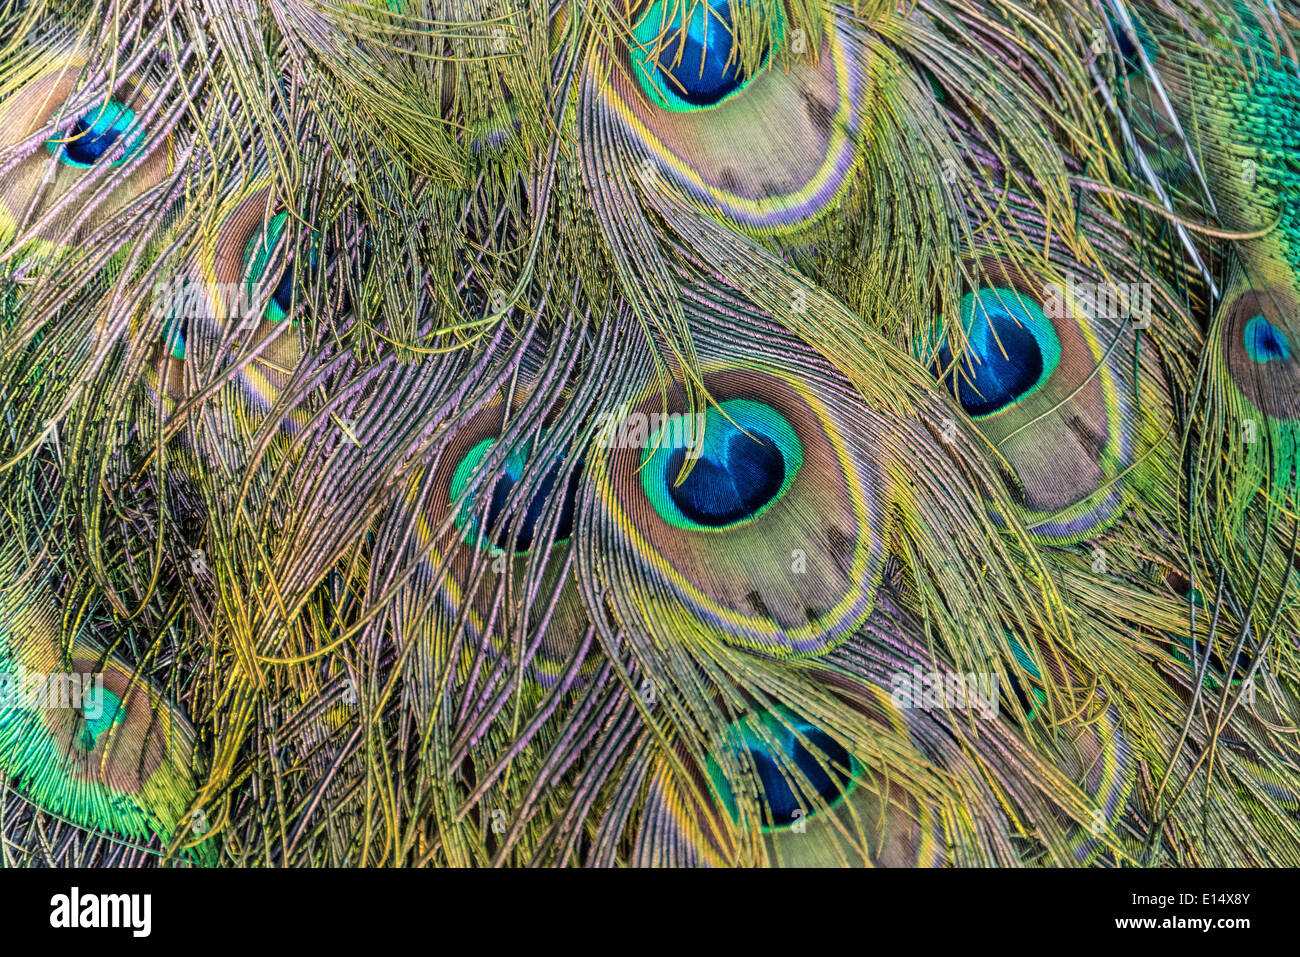 Feathers of a Peacock (Pavo) - Stock Image